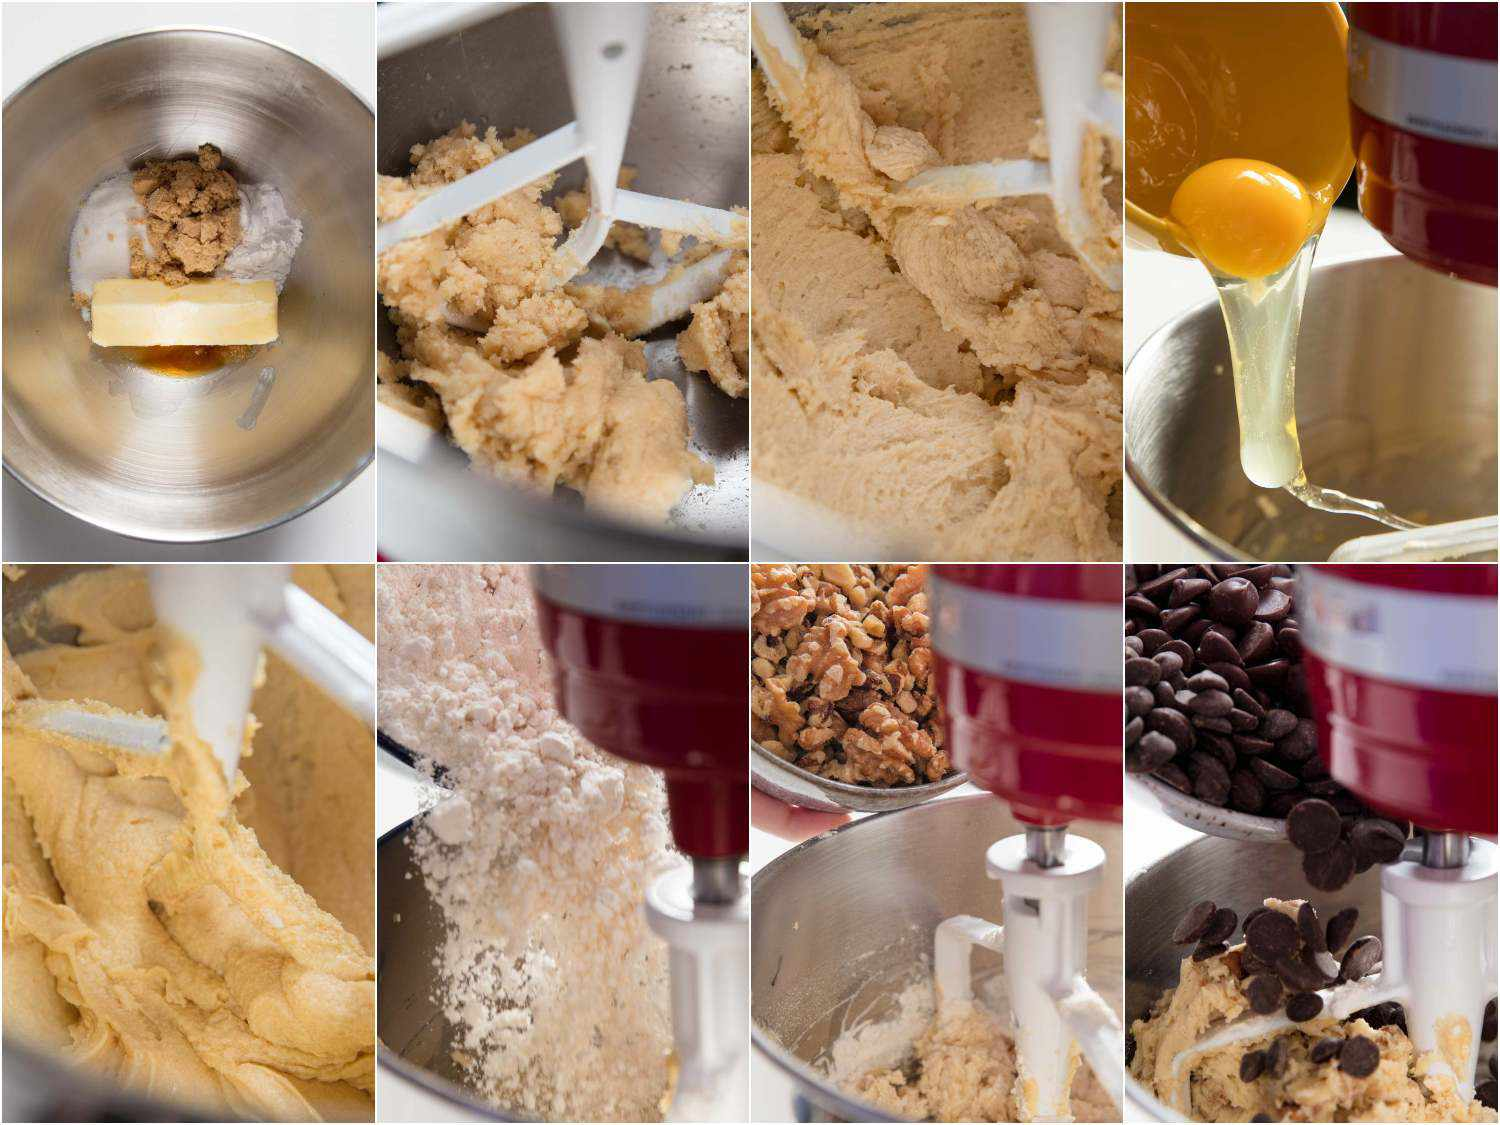 20190131-levain-style-chocolate-chip-cookies-vicky-wasik-step2